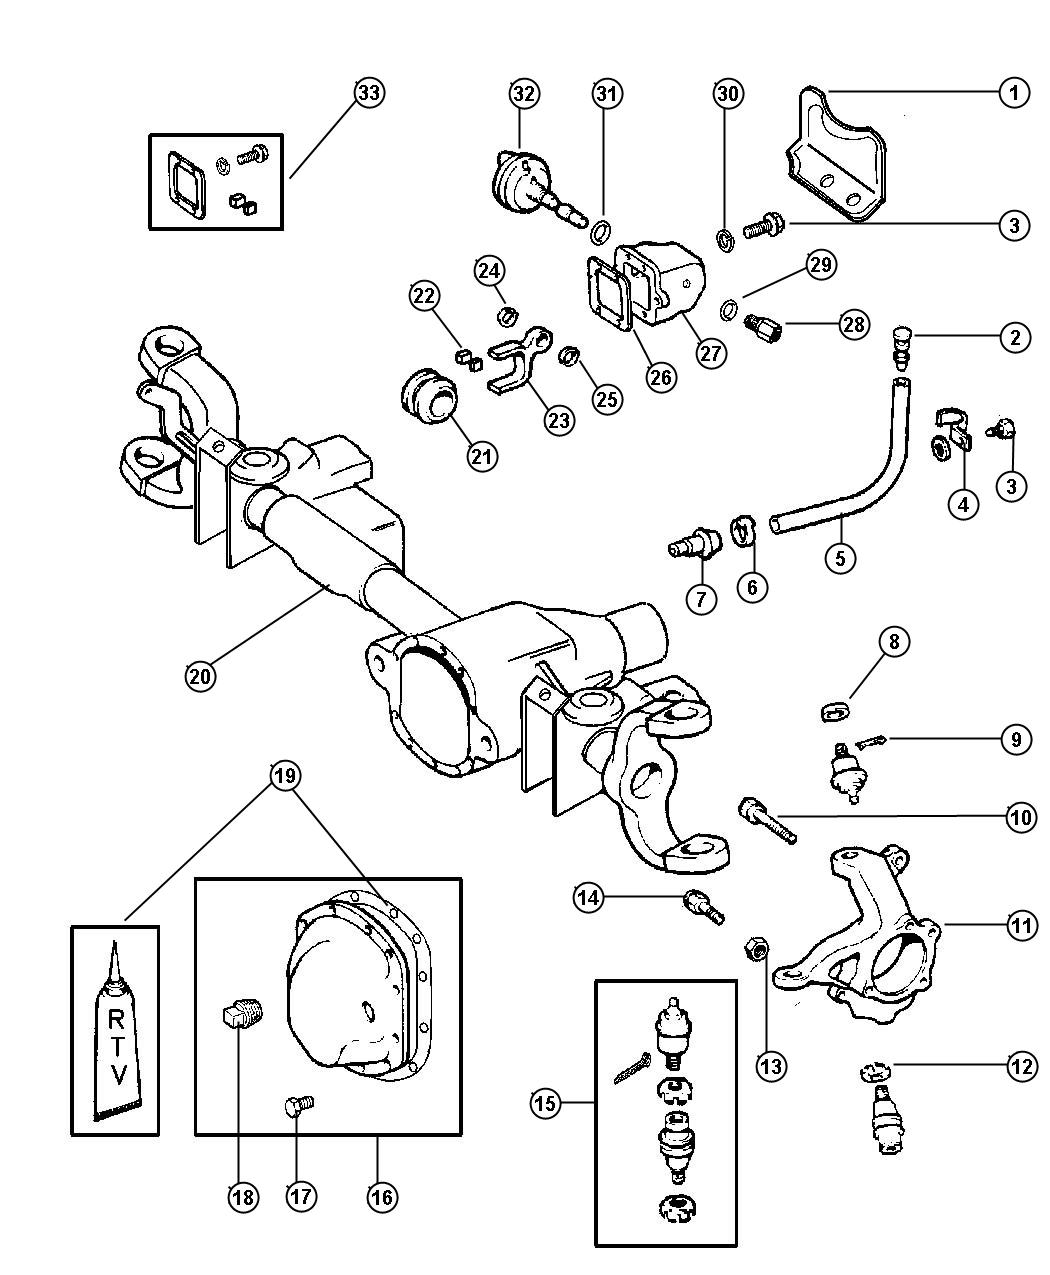 1999 dodge ram 1500 front axle diagram motor with capacitor wiring pictures to pin on